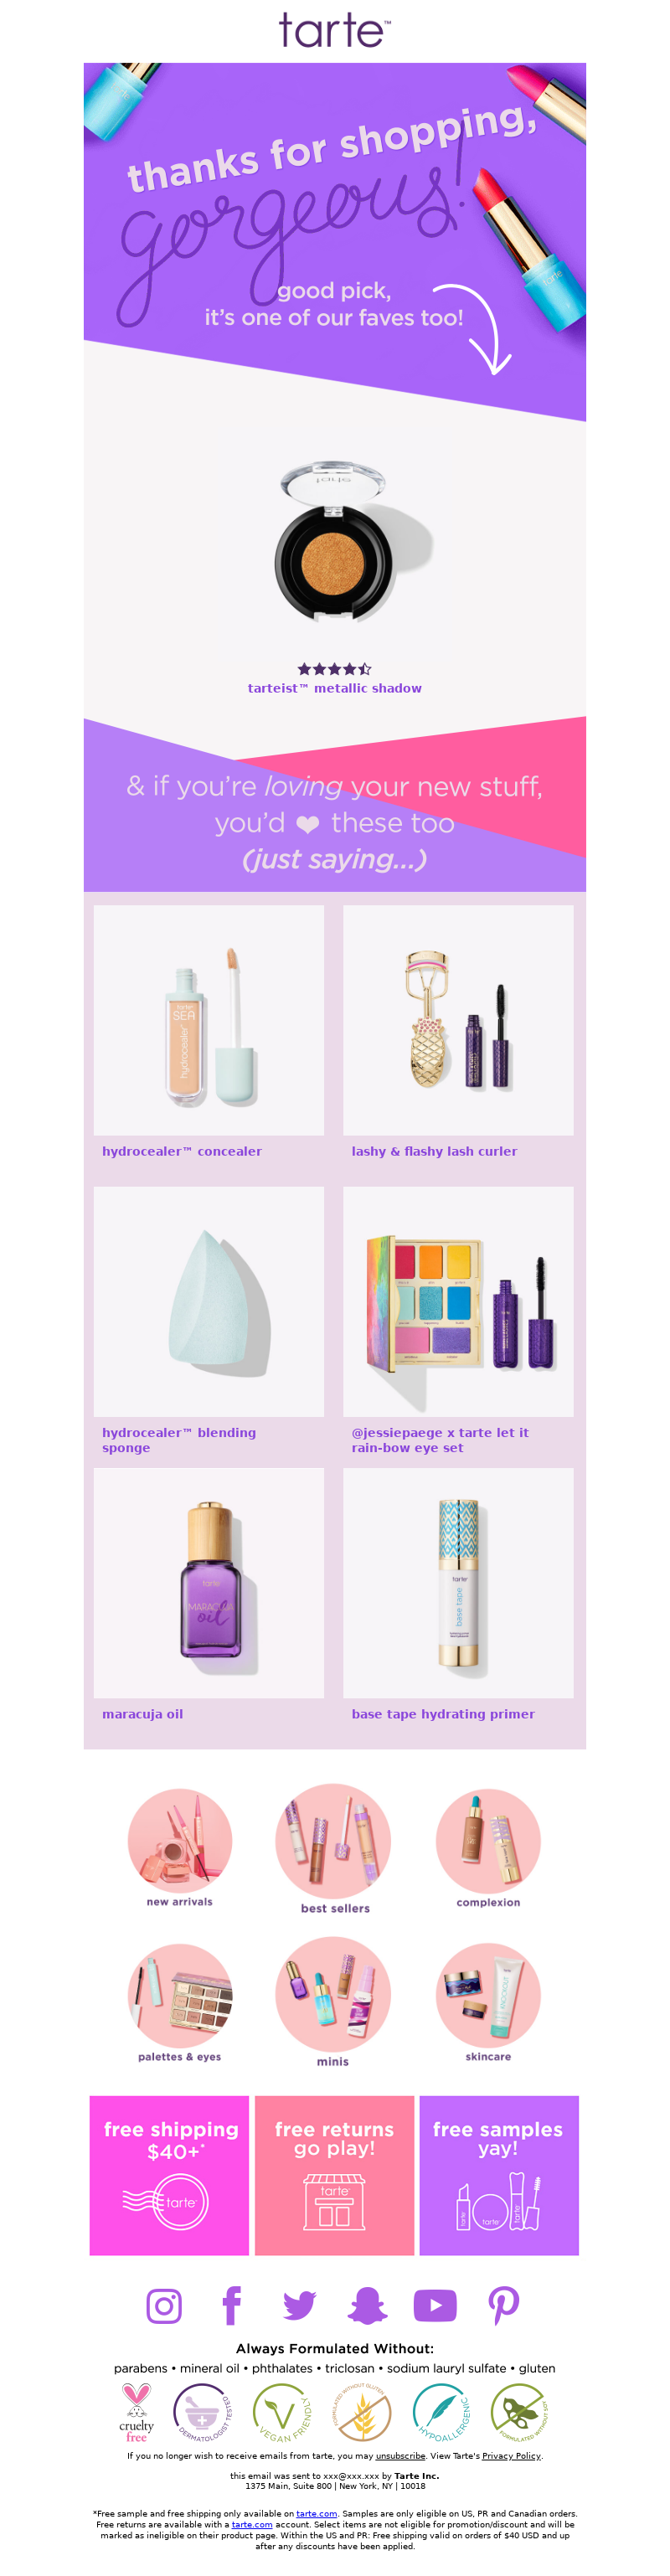 Tarte Cosmetics - You're gonna 💜your new item